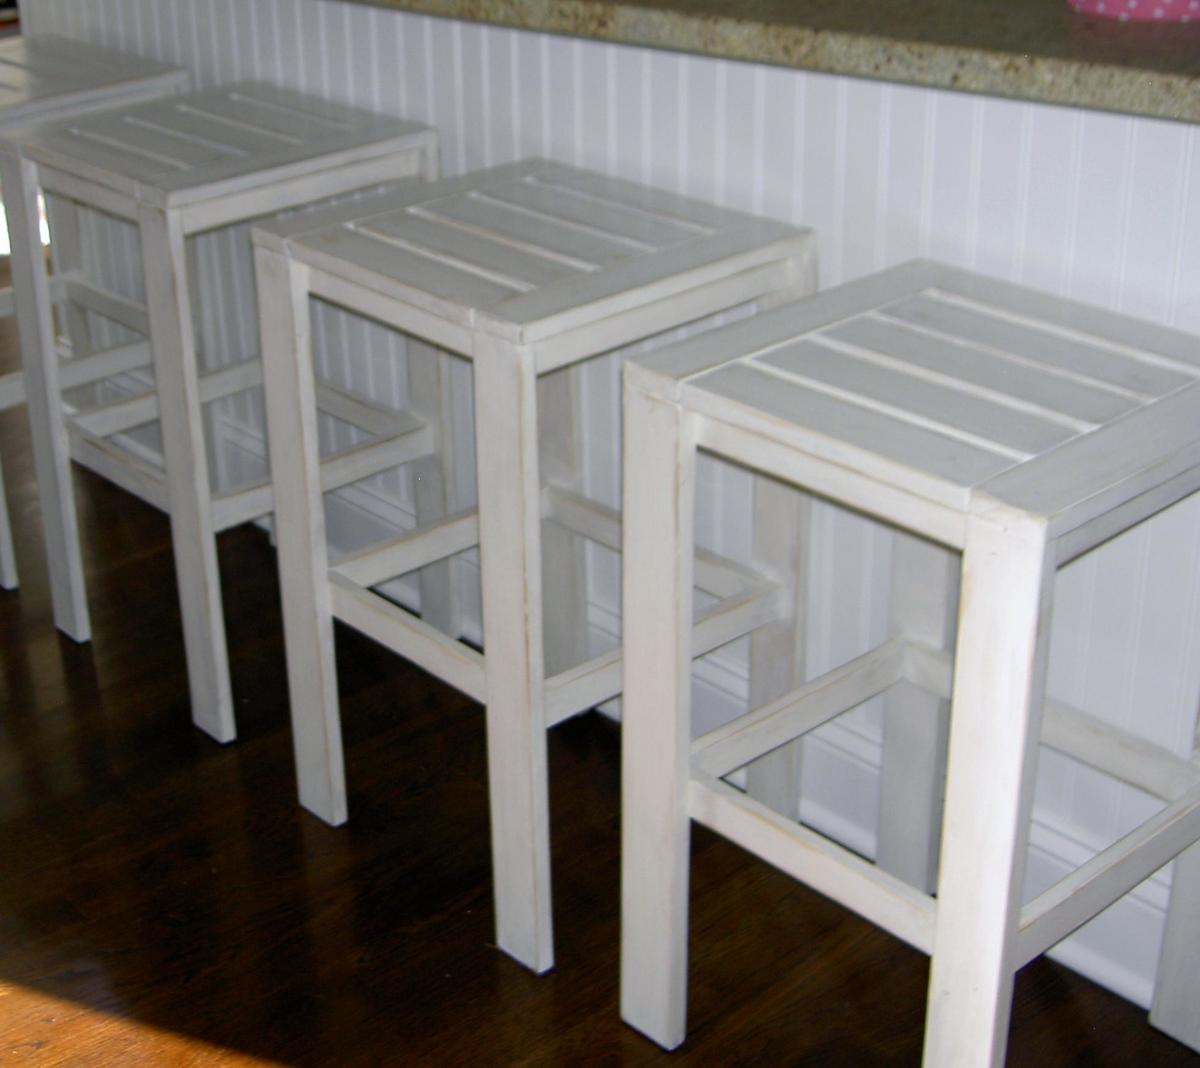 Ana White Stools For The Bar Table For The Simple